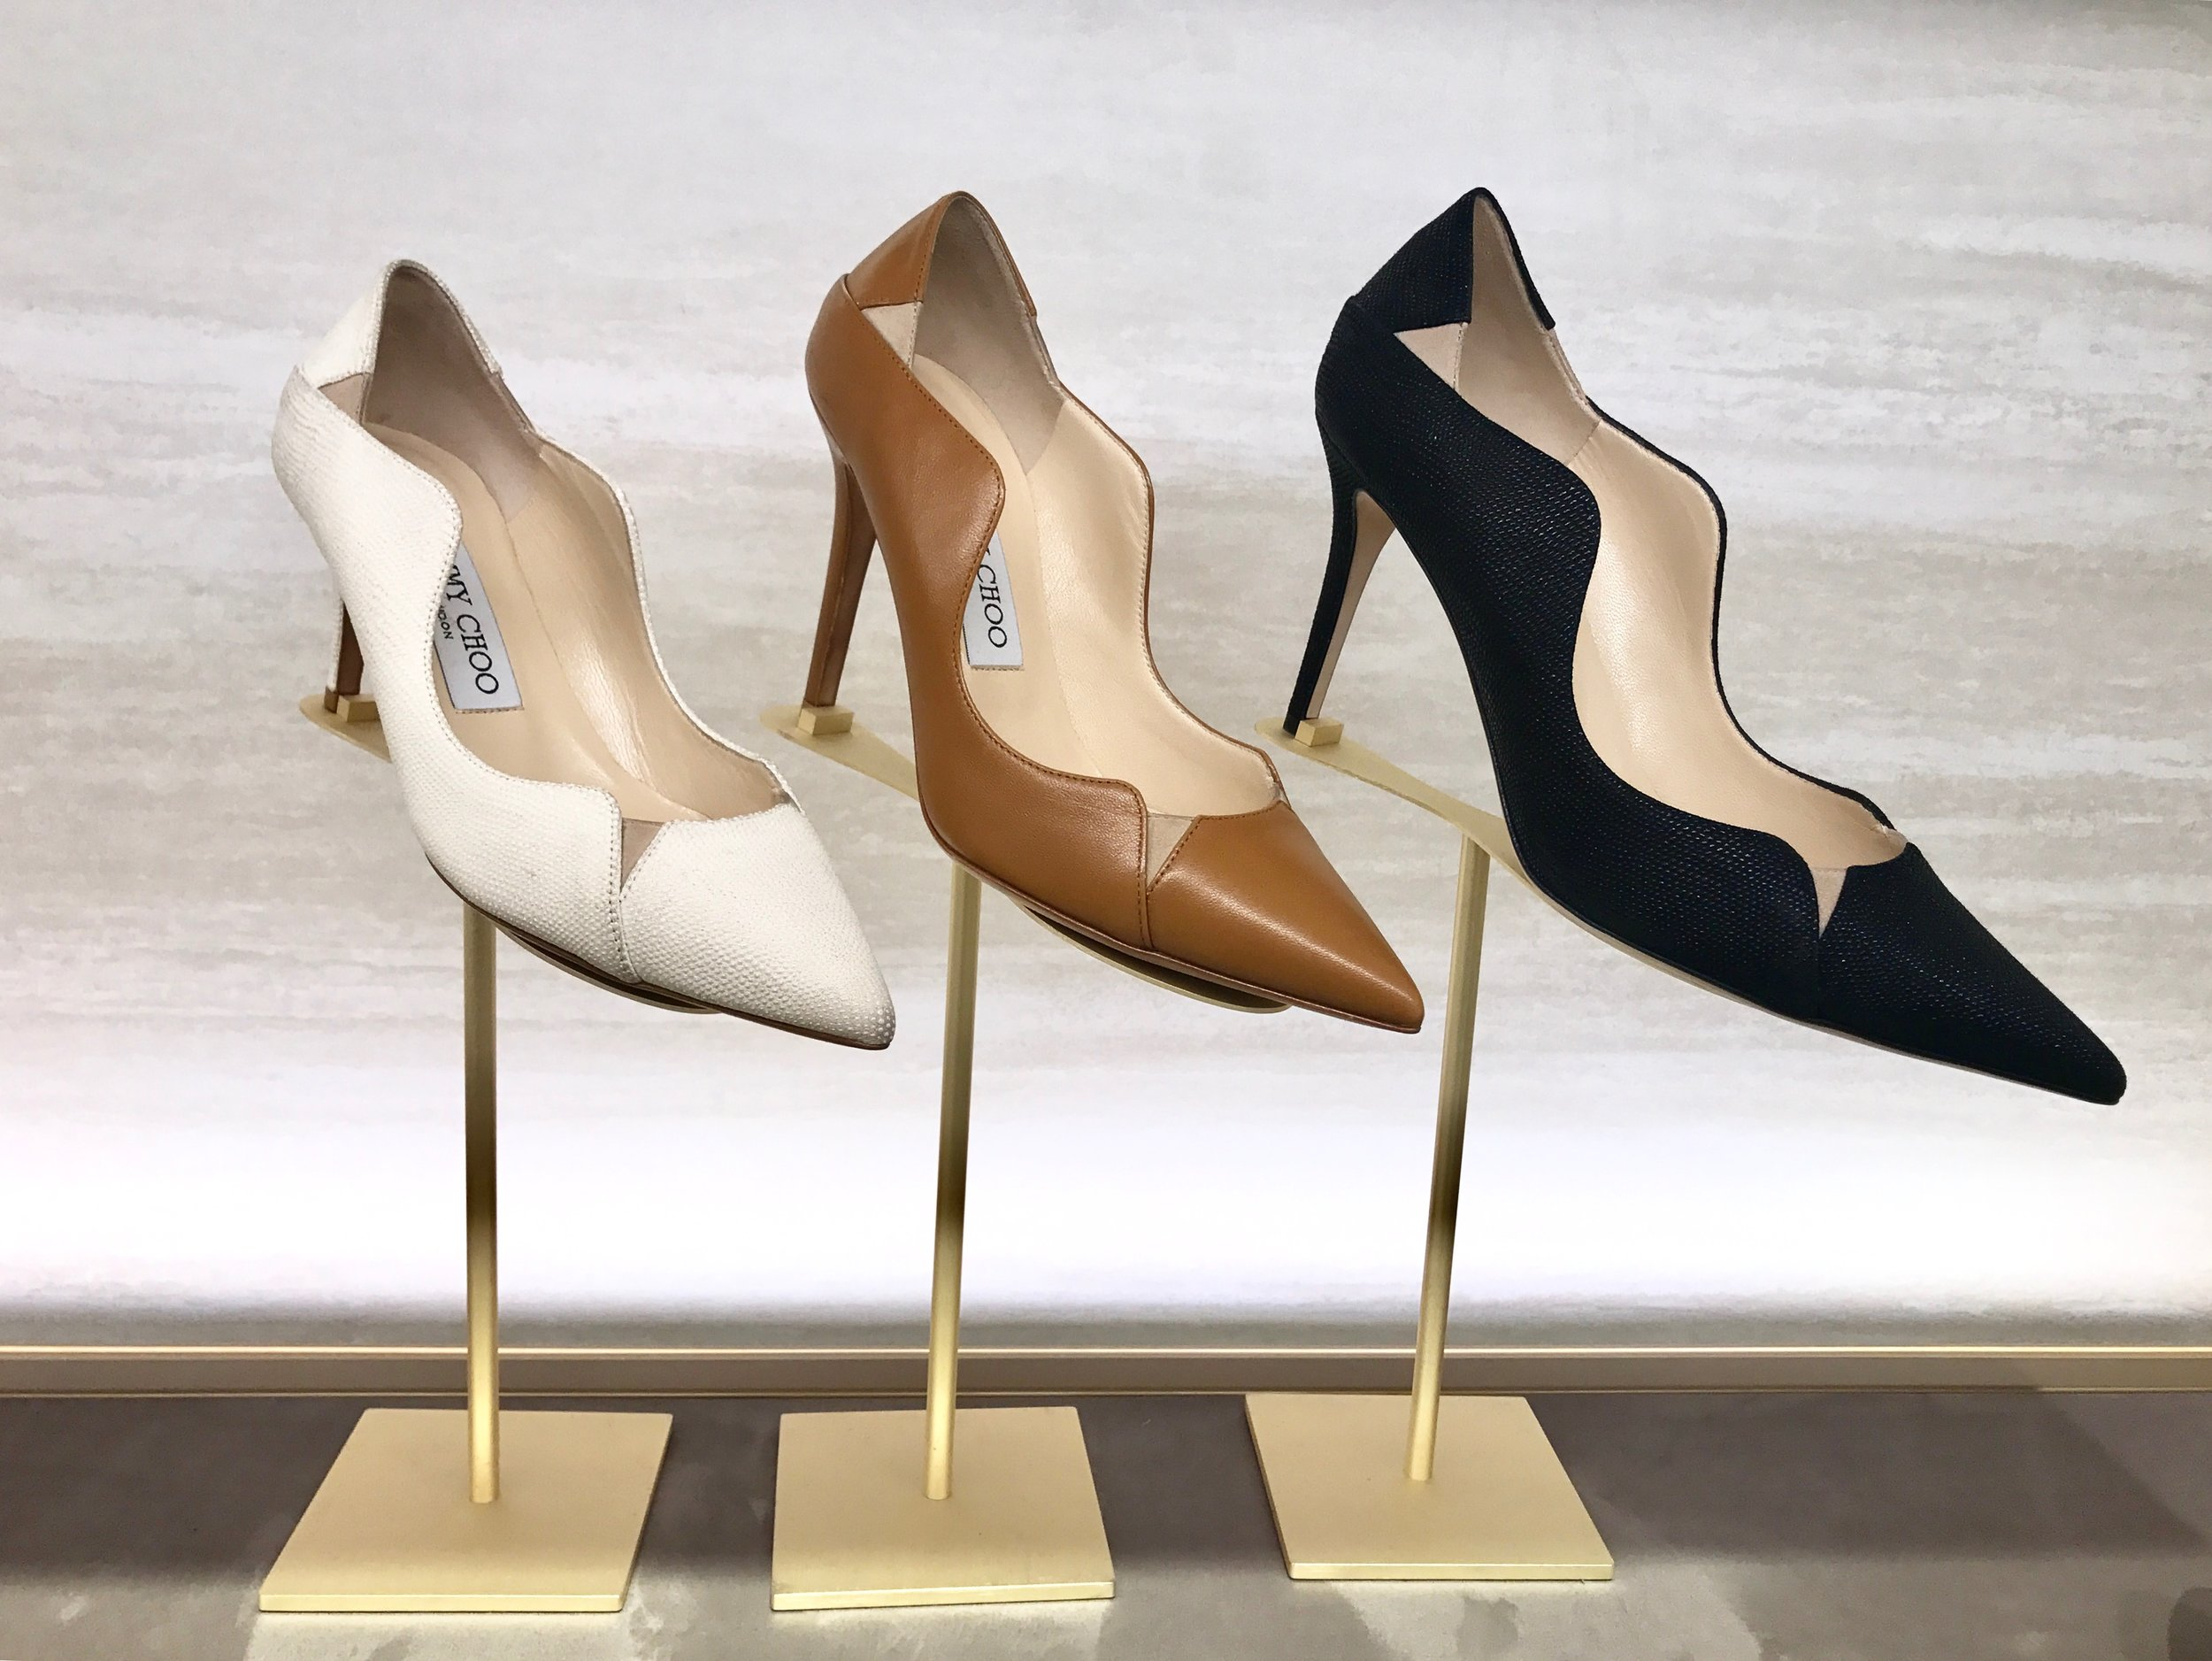 THE GROWN UP EDIT - Jimmy Choo